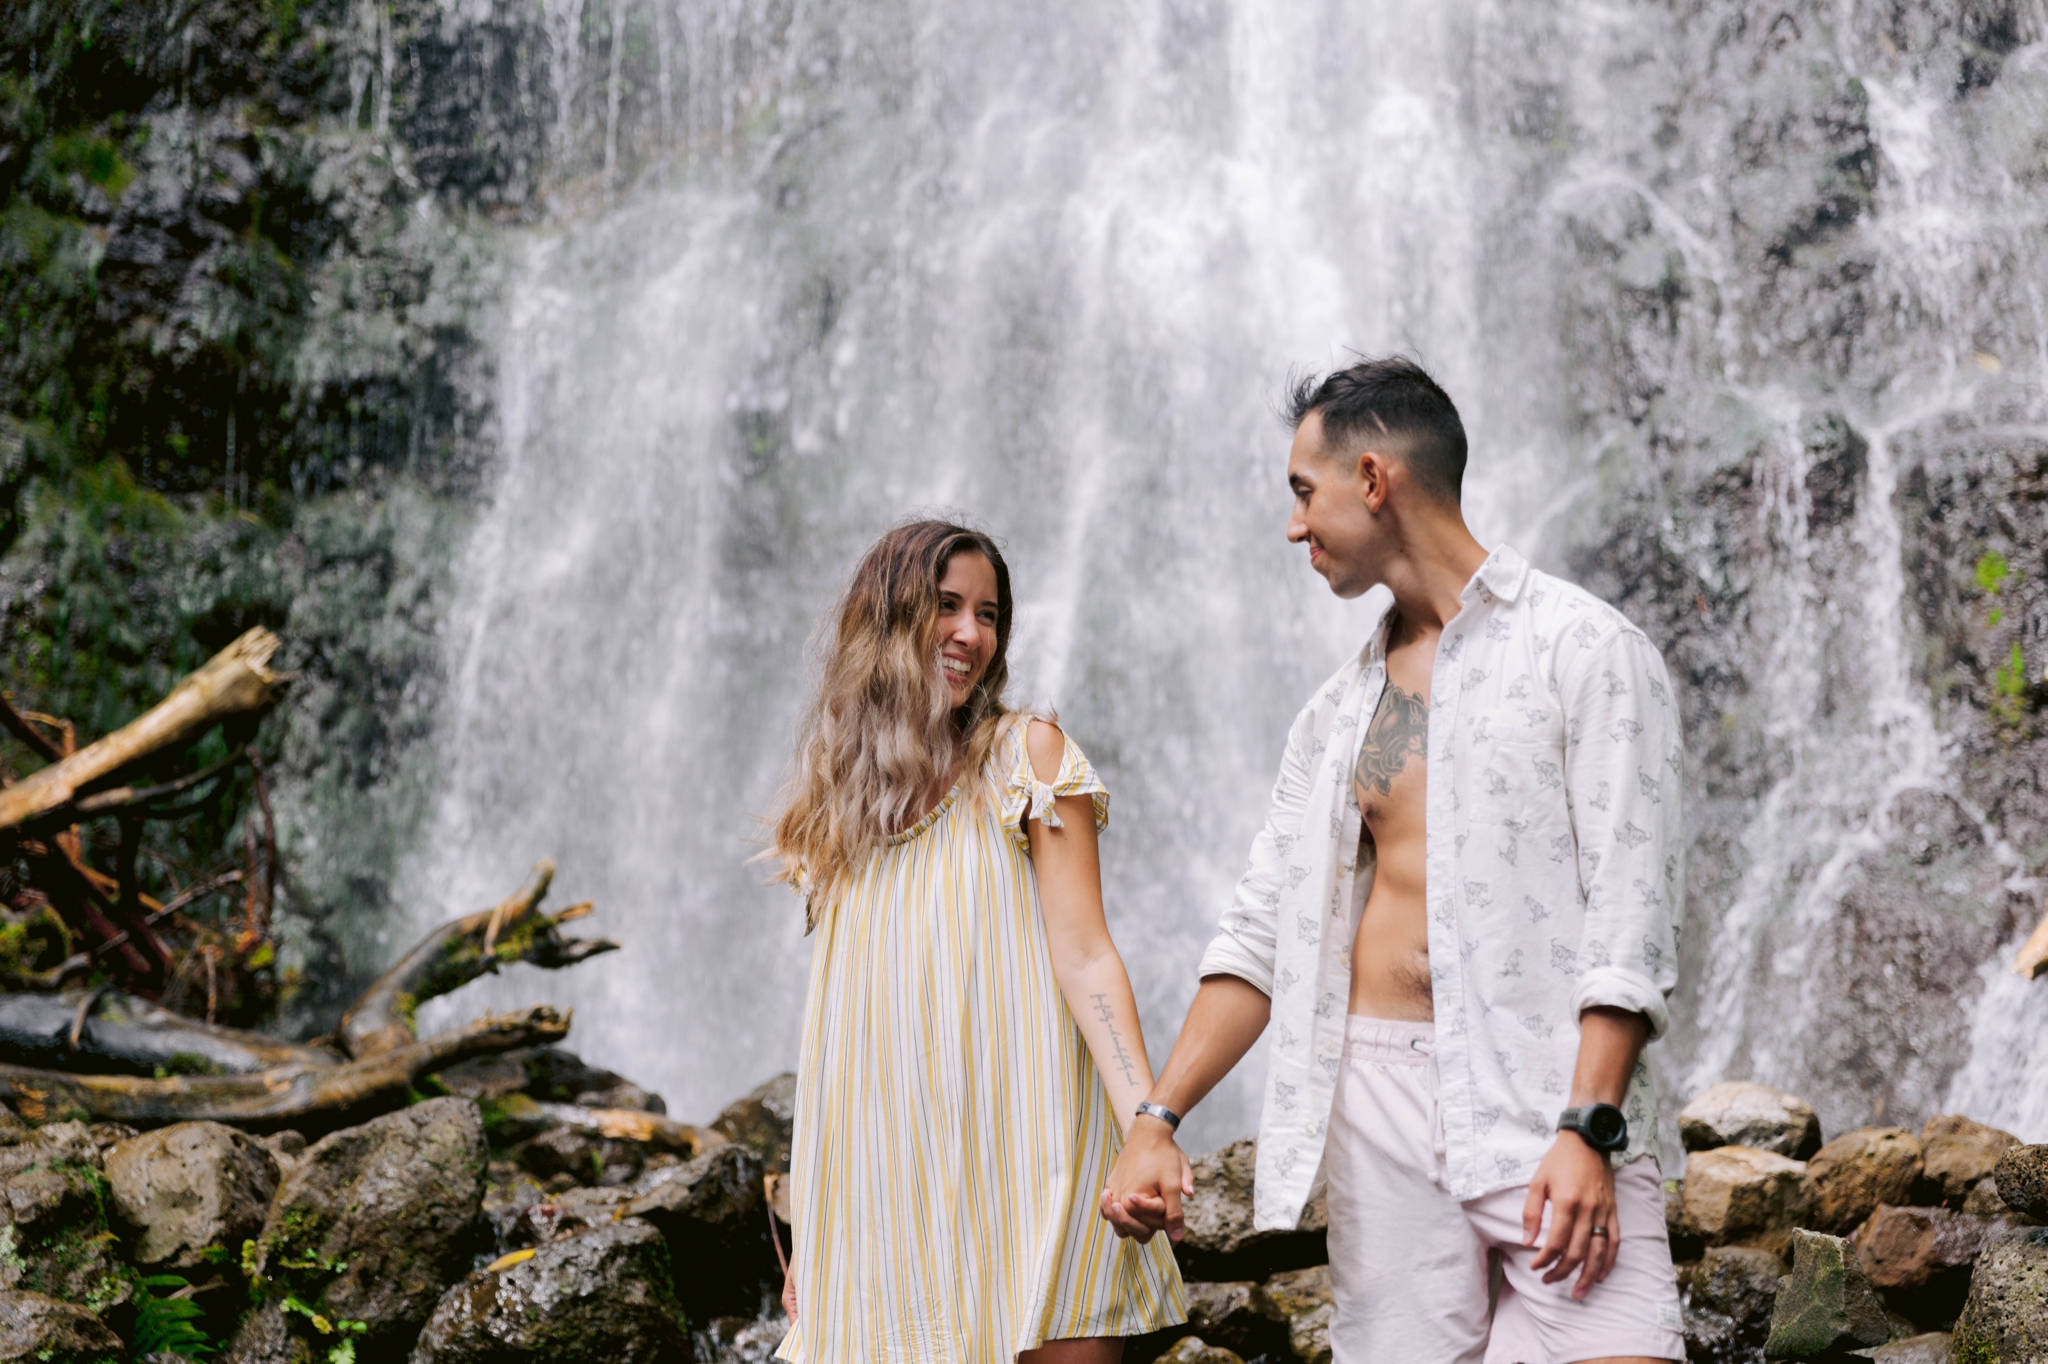 Adventure Couples Session at a Waterfall - Kailua, Oahu, Hawaii Engagement Photographer - Johanna Dye